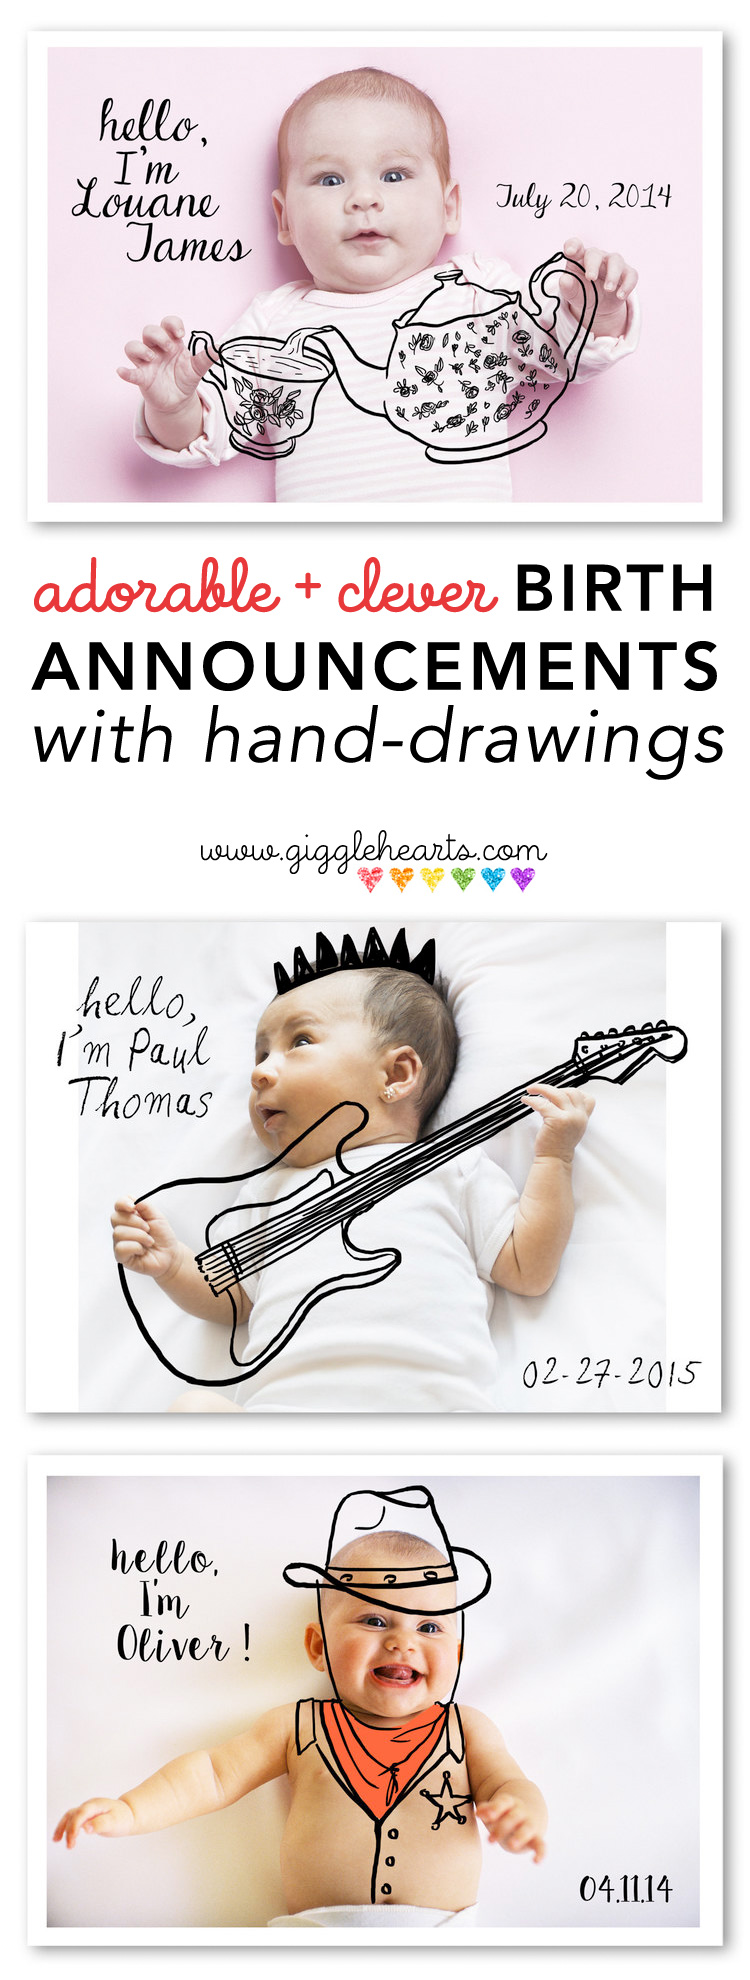 Announce your New Baby in an Original Way with these Adorable + Clever Birth Announcements with Hand-Drawings / as shared on GiggleHearts.com